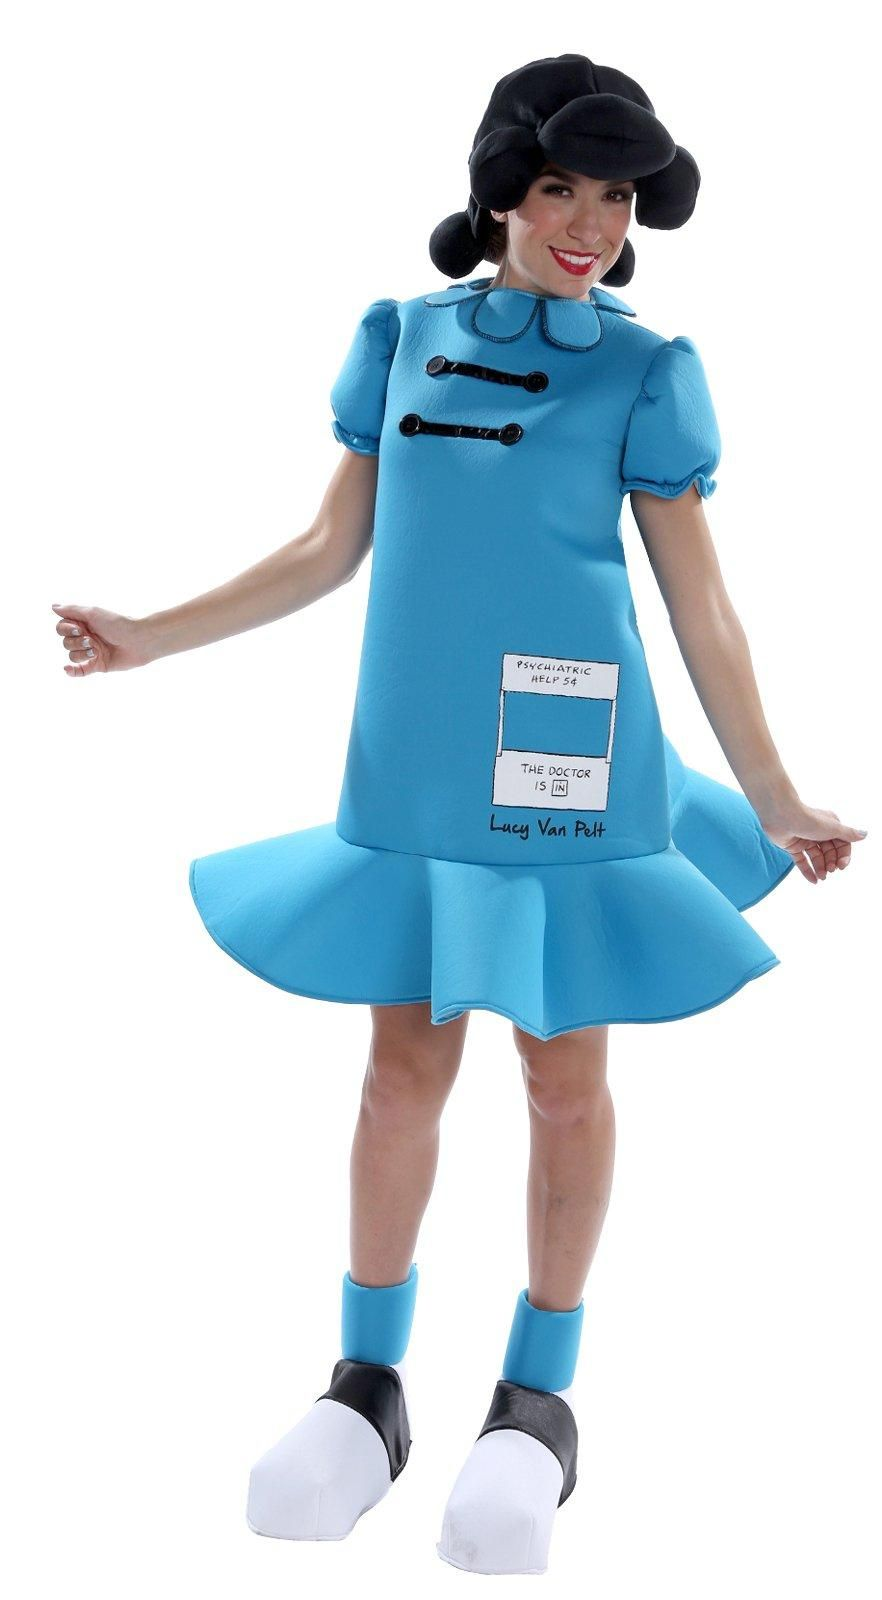 peanuts: deluxe lucy costume for adults from costumeexpress